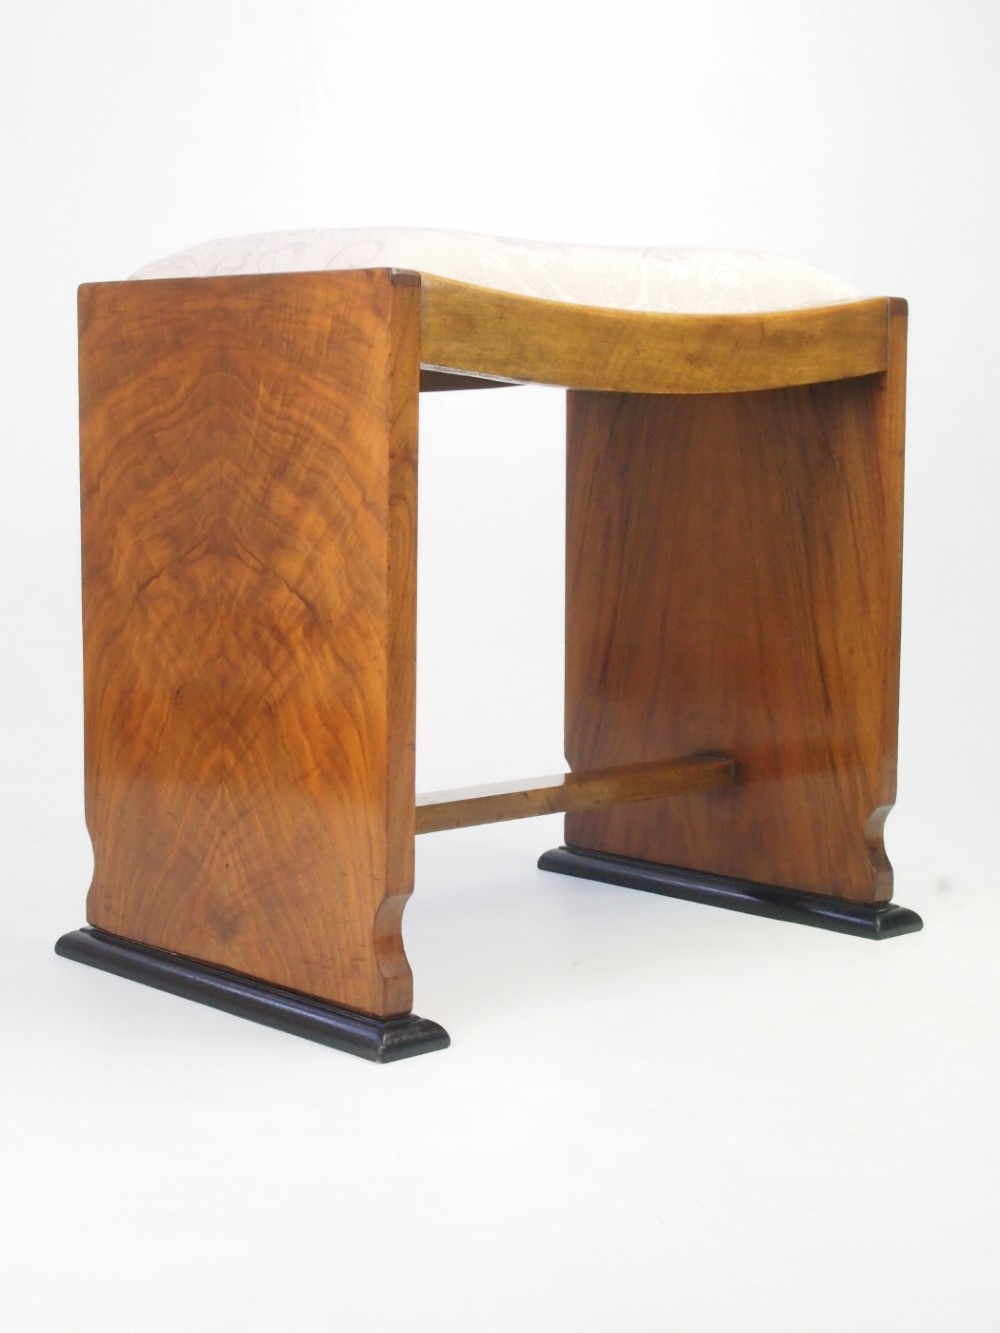 art deco walnut dressing table stool piano stool & Art Deco Walnut Dressing Table Stool / Piano Stool | 312397 ... islam-shia.org